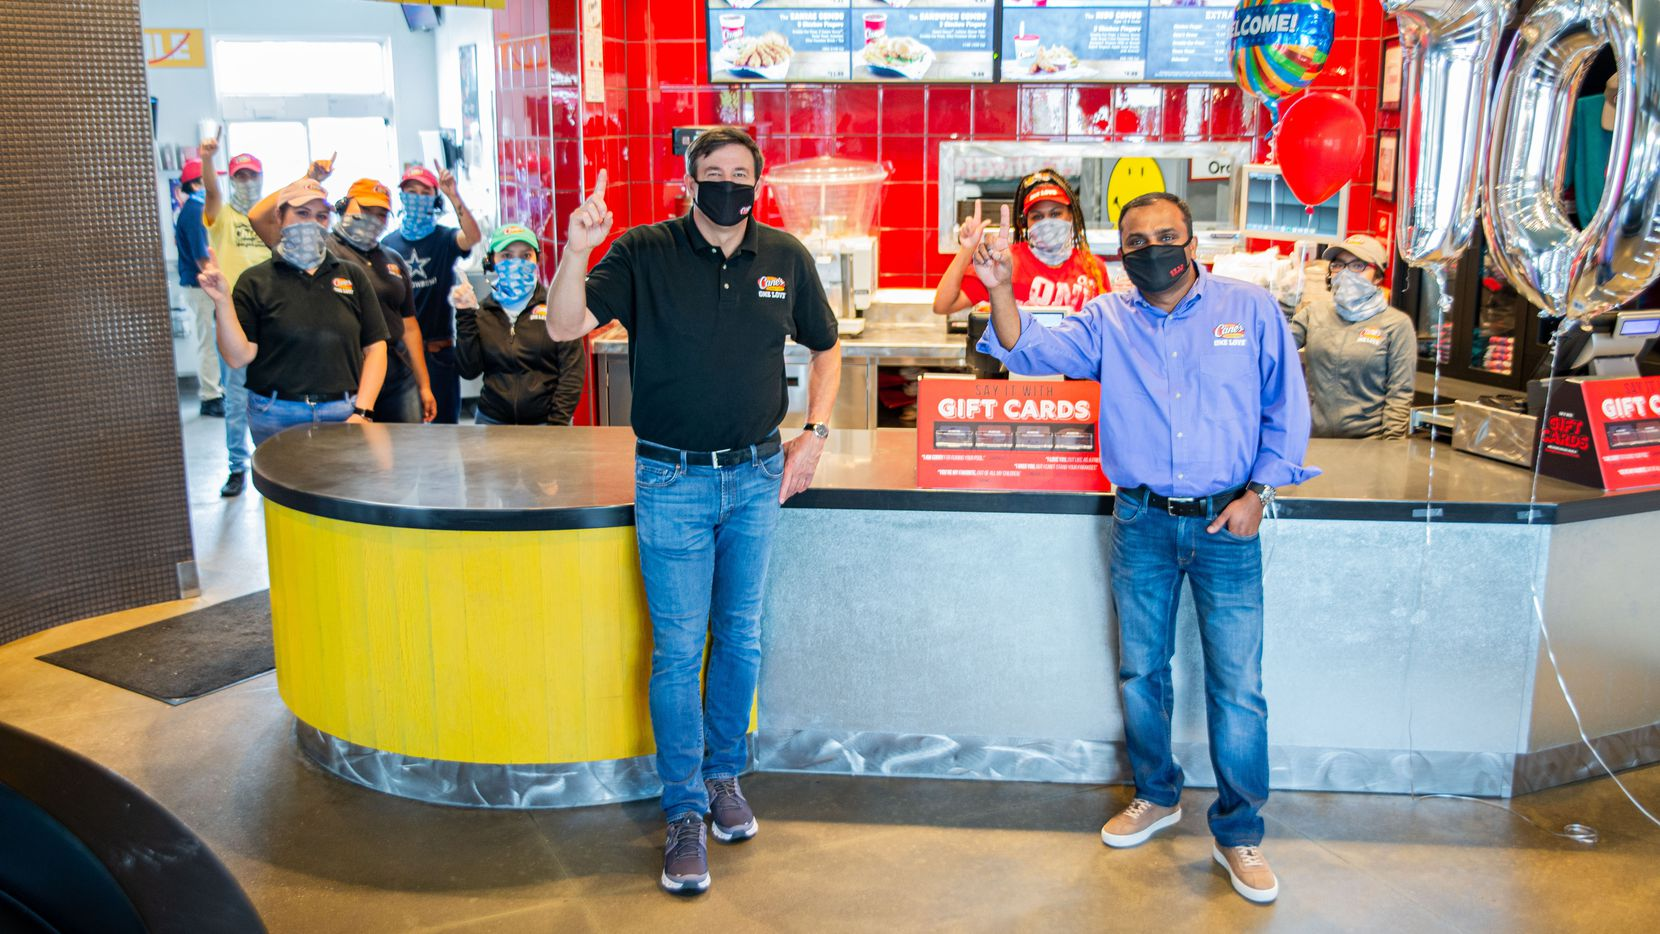 Raising Cane's Chicken Fingers co-CEOs Todd Graves, left, and AJ Kumaran are shown at one of the company's restaurants.